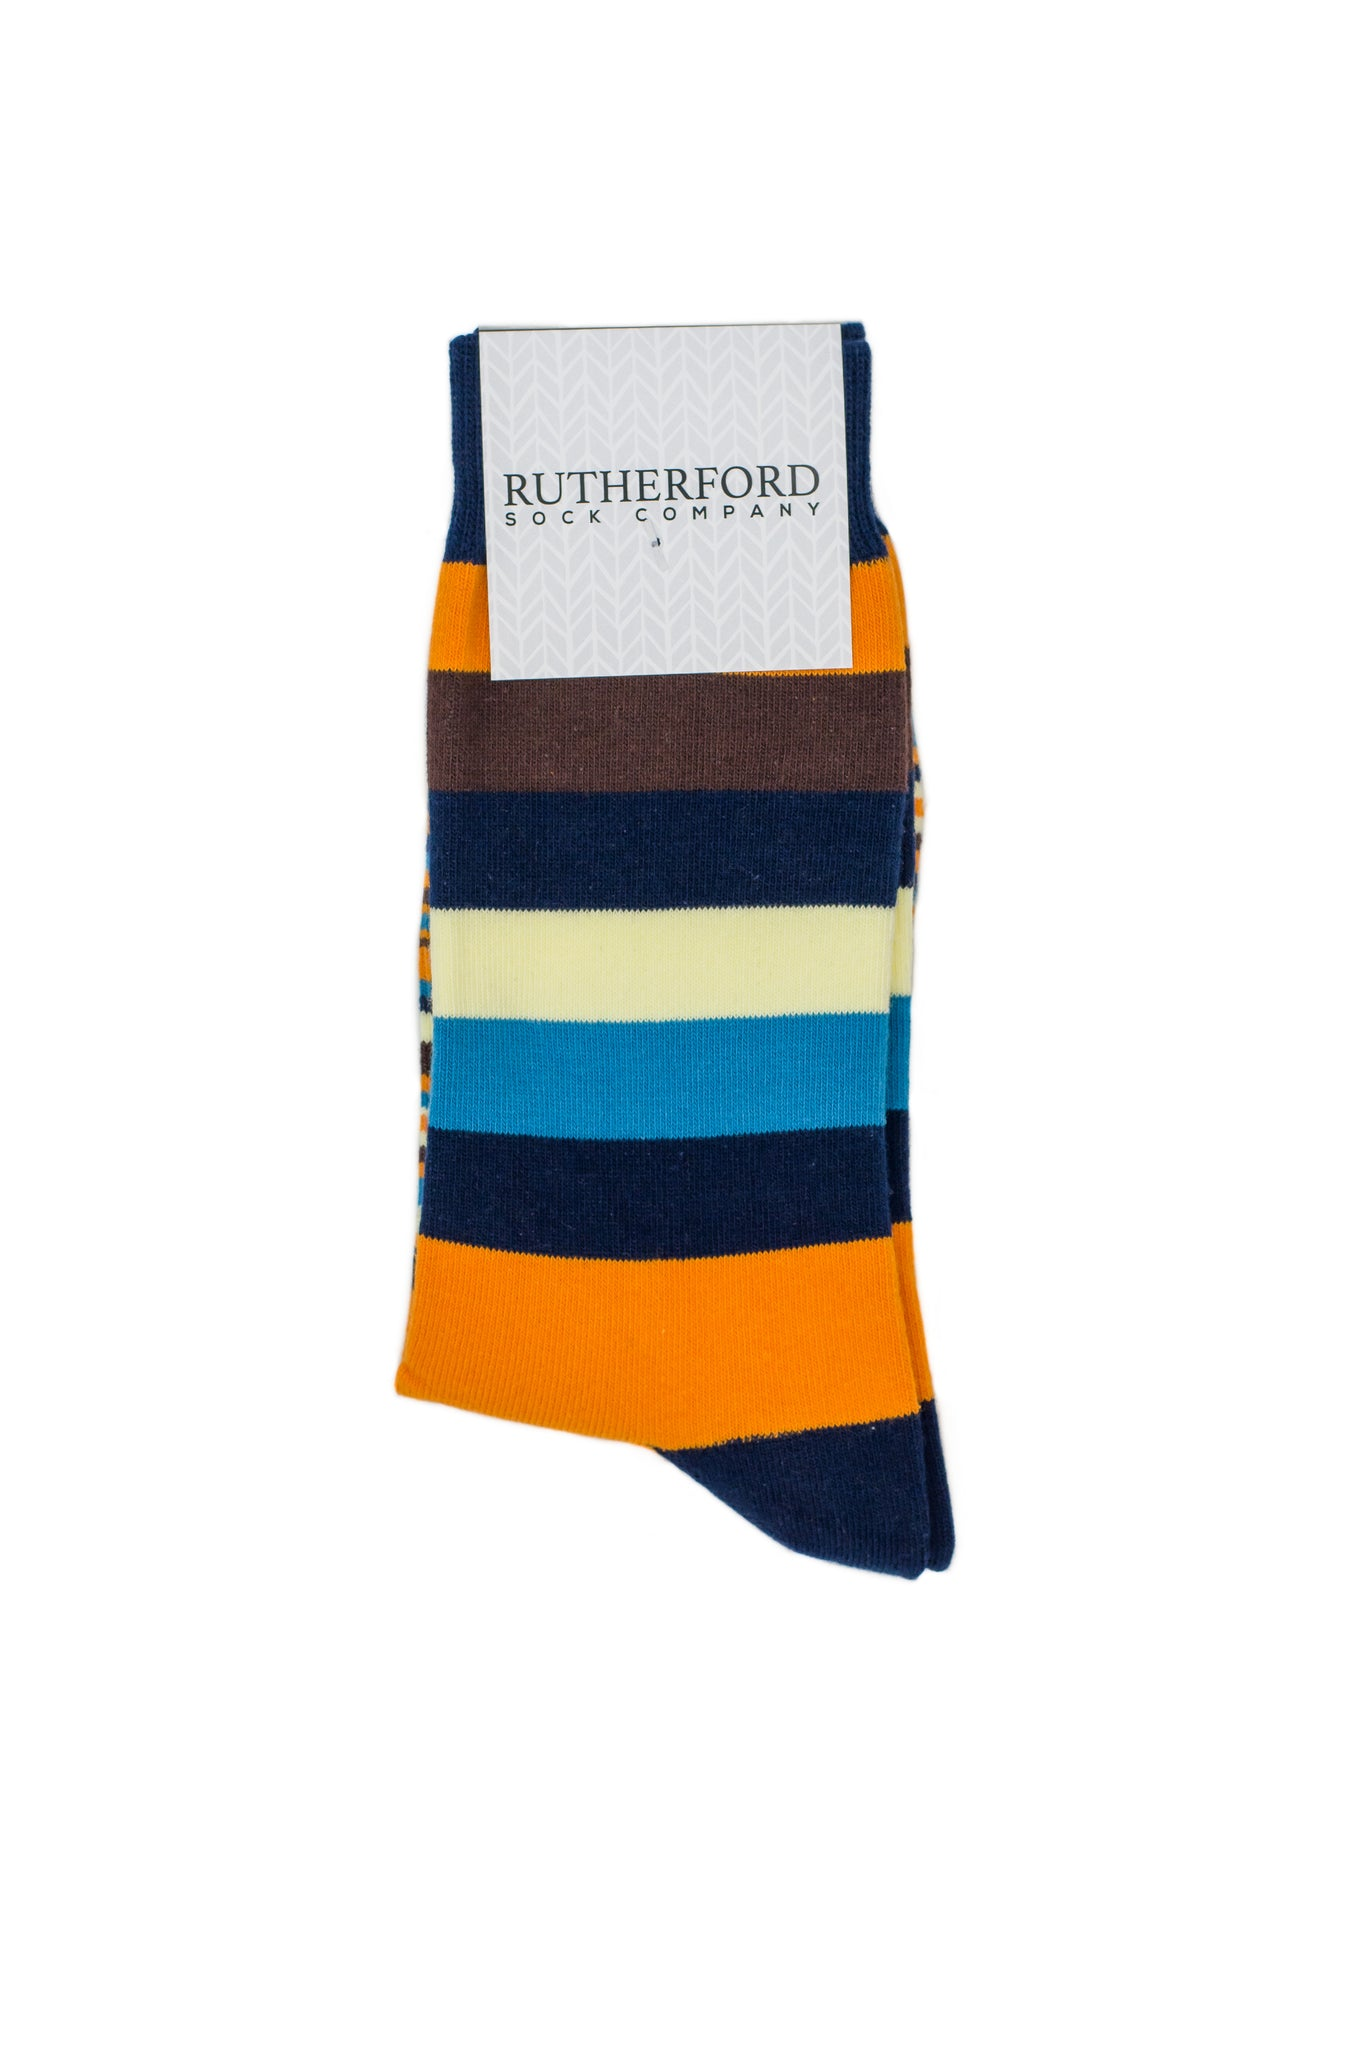 The Multi Stripe - Rutherford Sock Co.